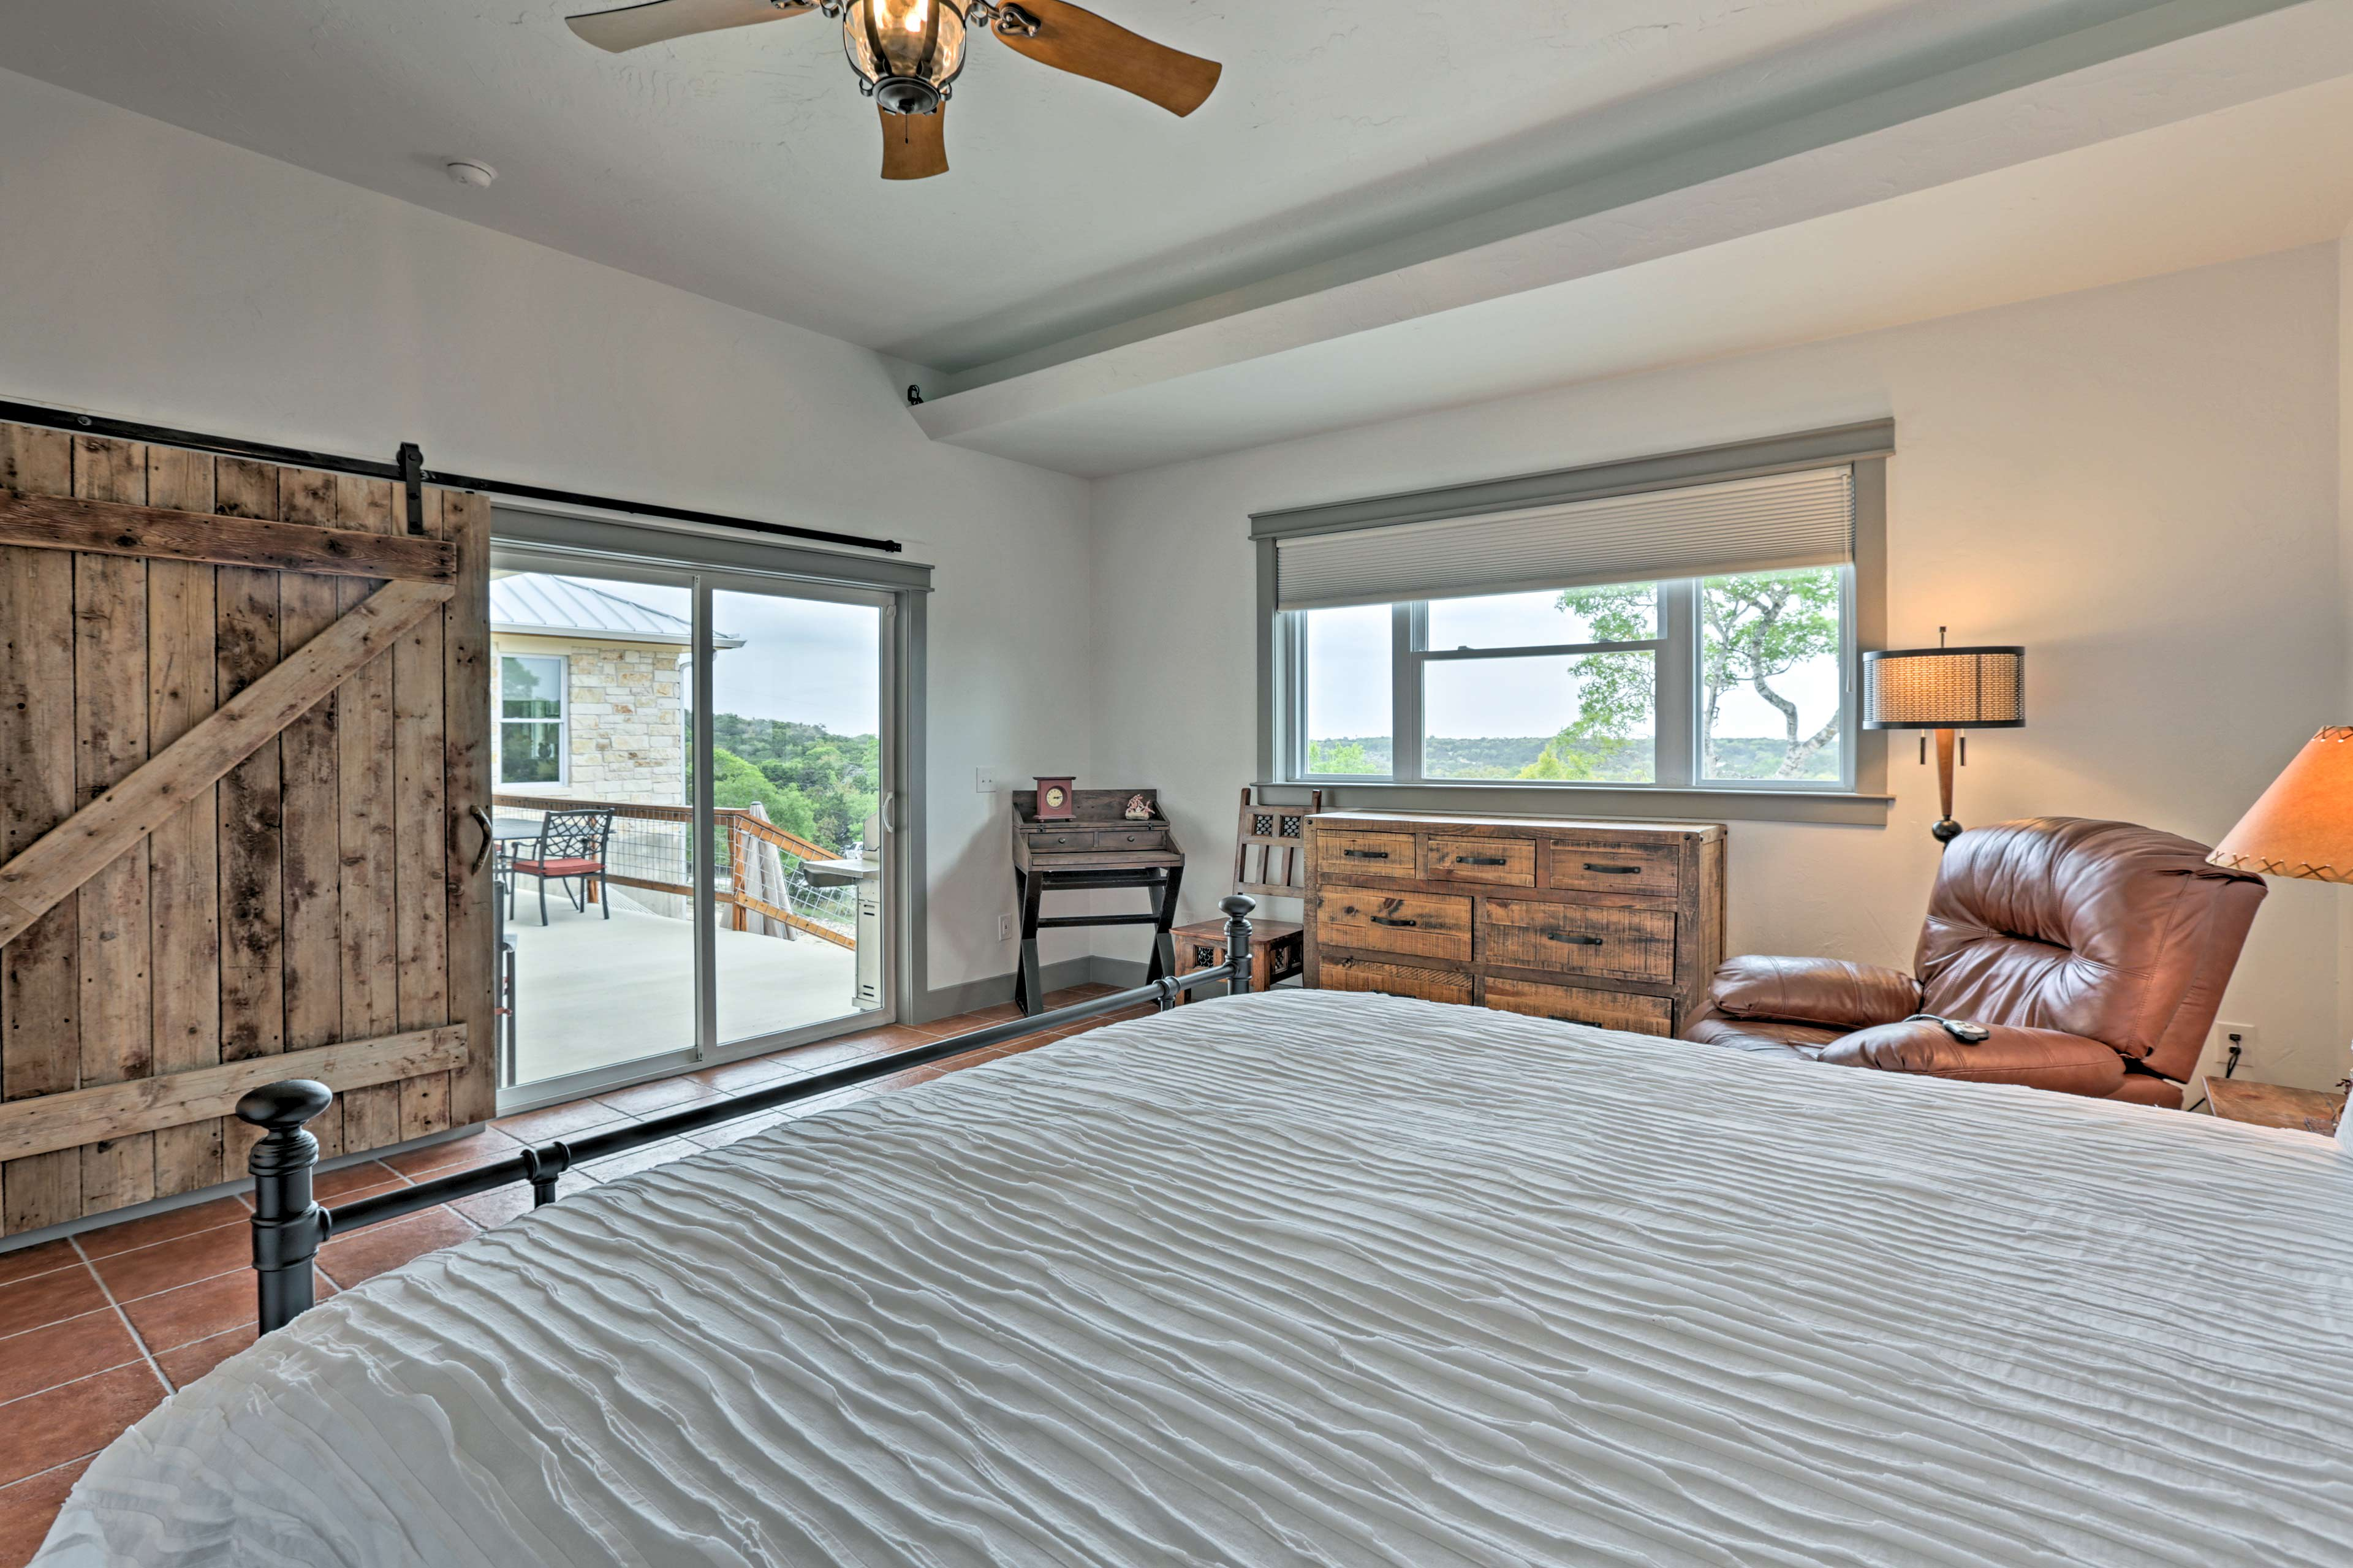 Glass sliding doors connect the master bedroom to the main deck.